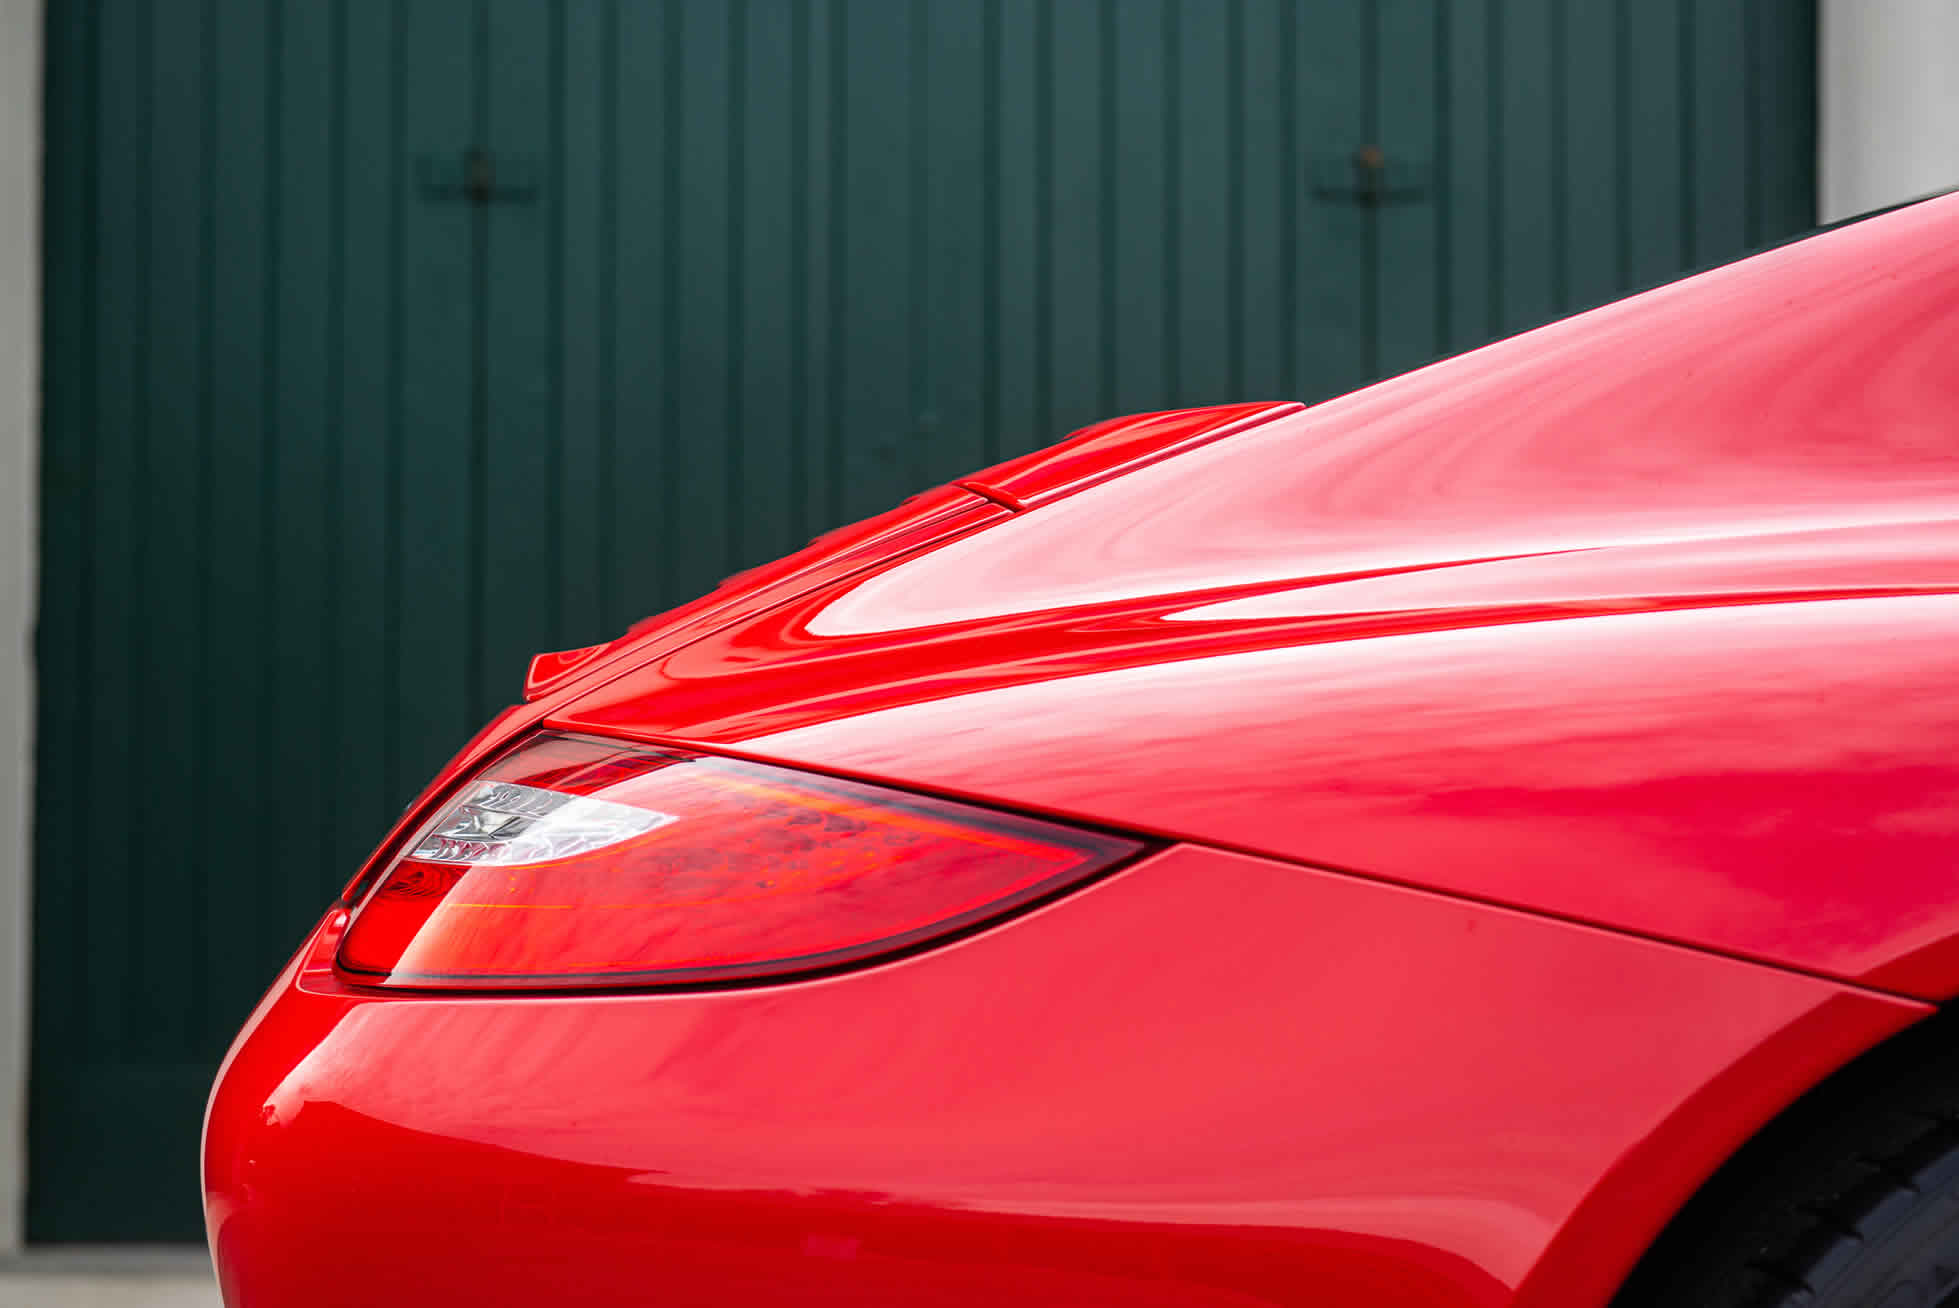 Rear view 2011 Porsche 911 Carrera GTS For Sale at Sports Purpose, Bicester Heriatge